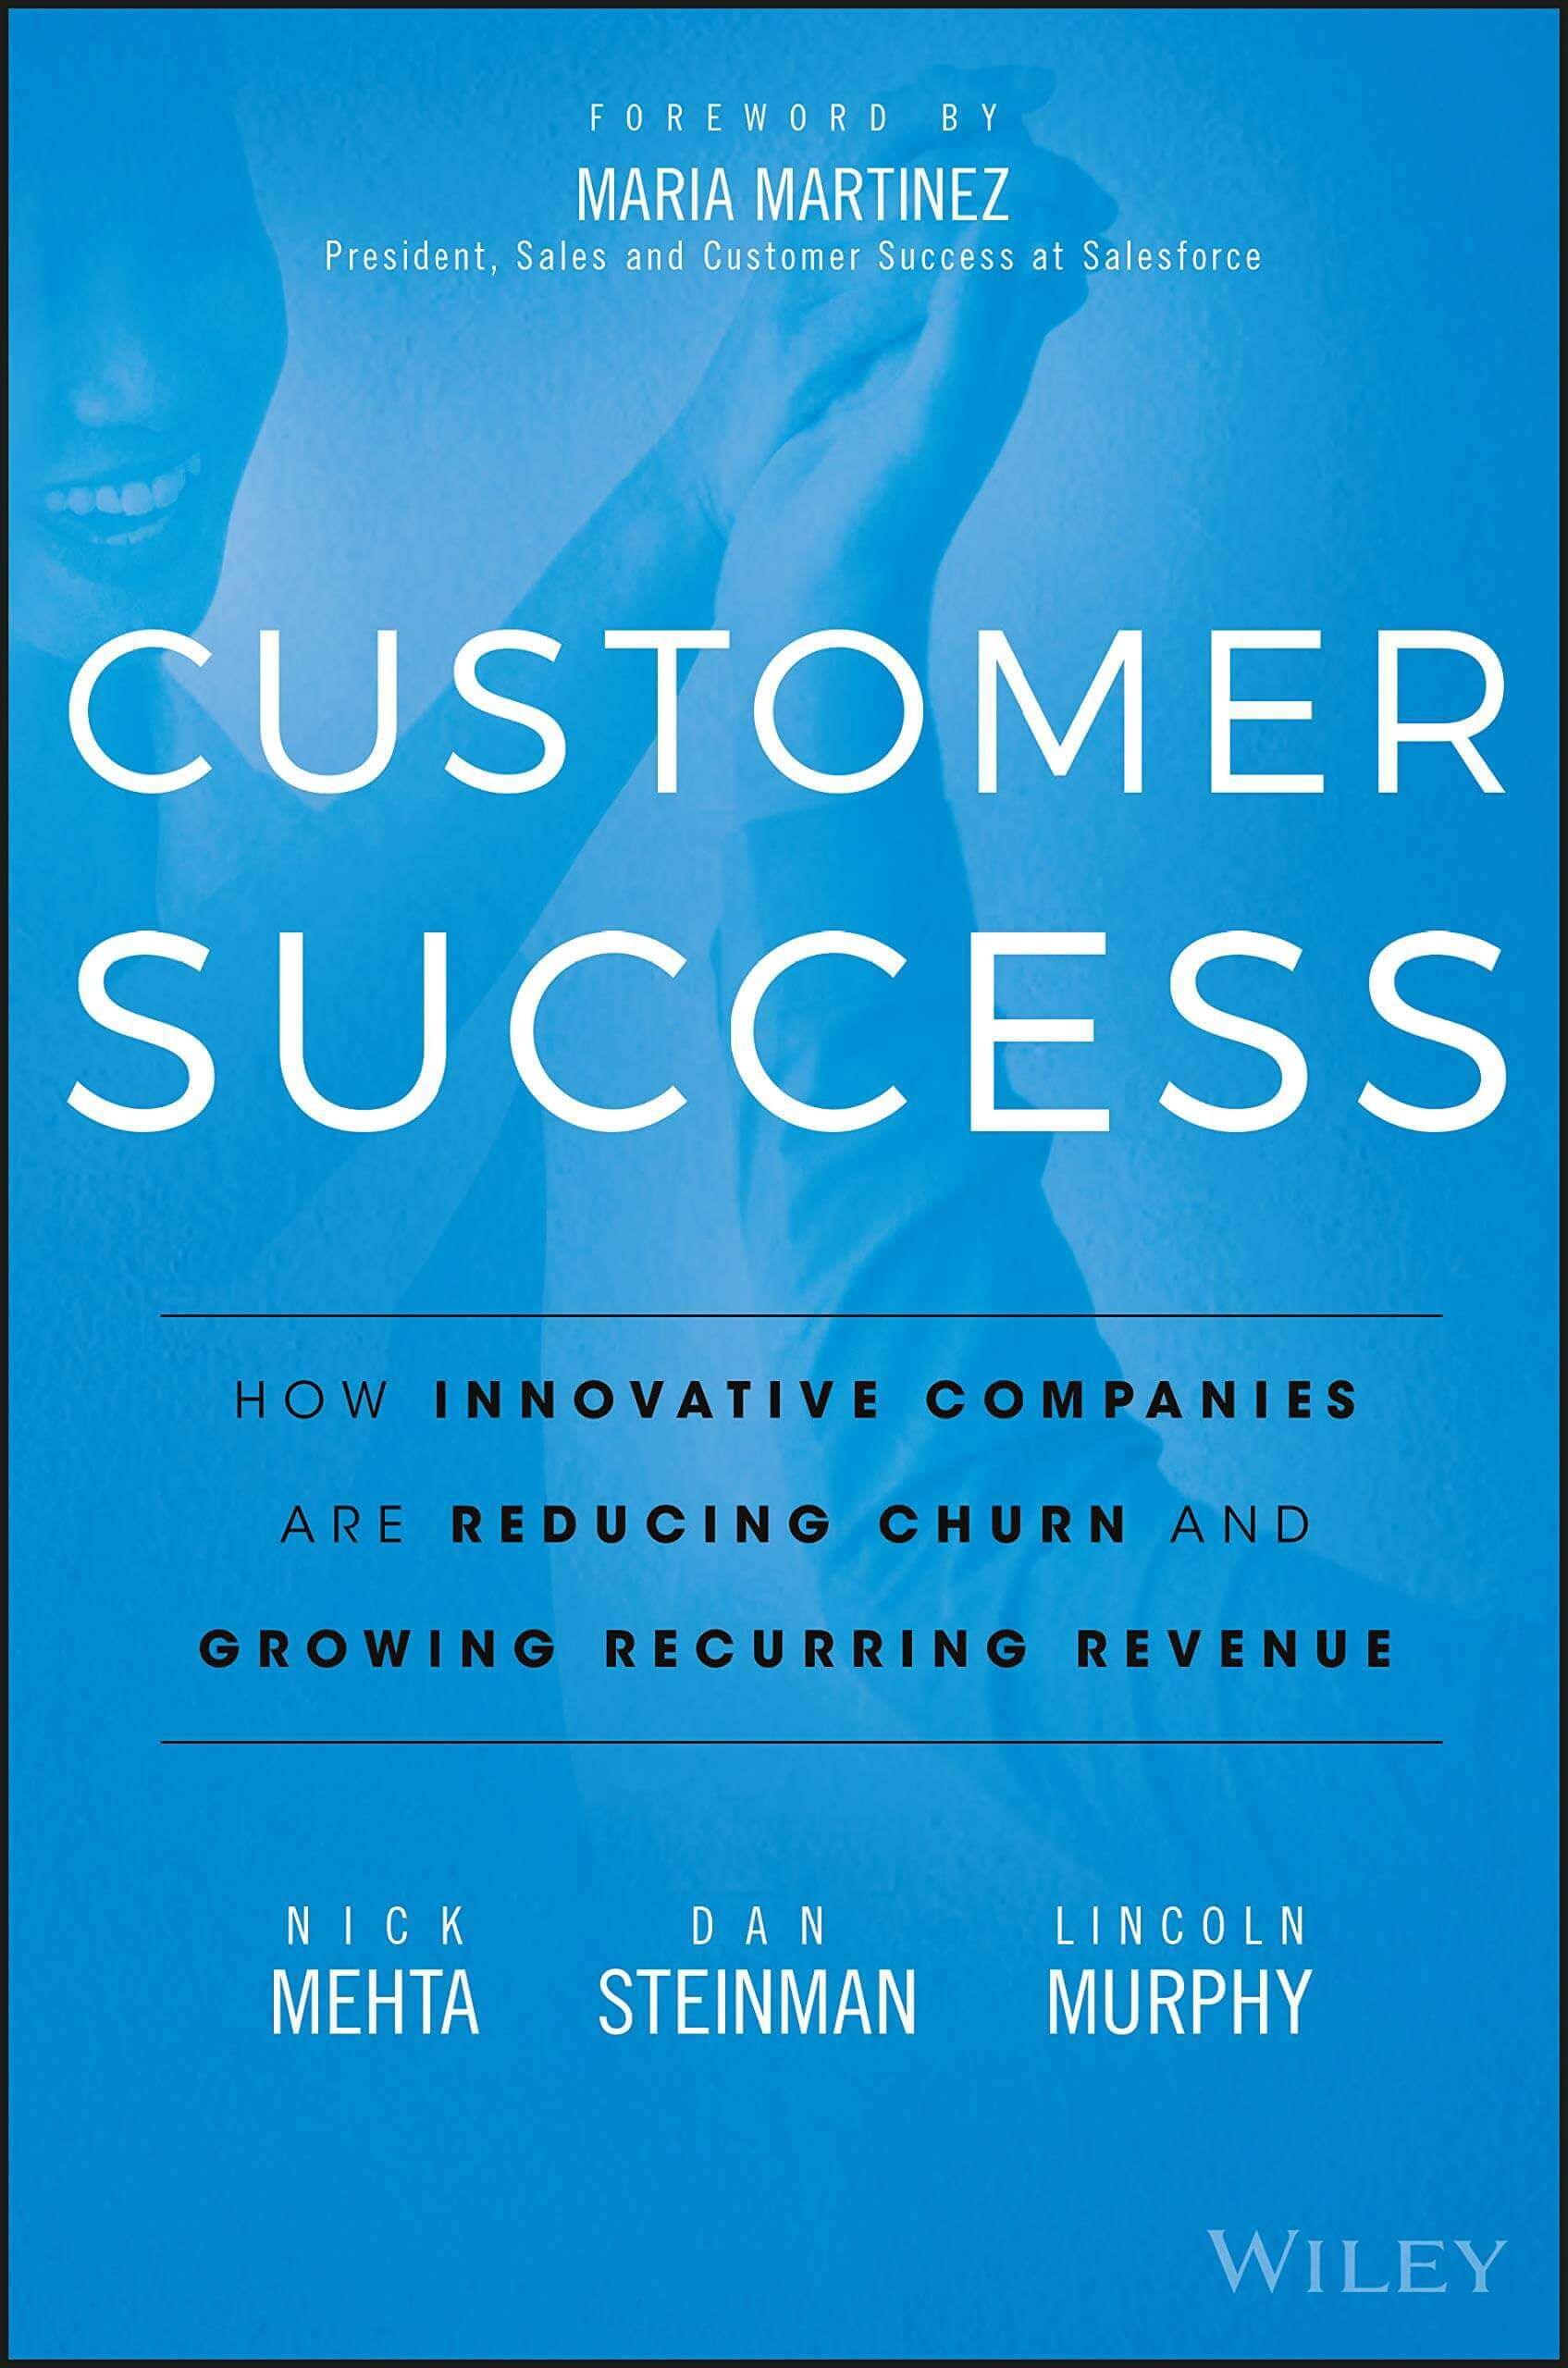 Customer Success book by Gainsight